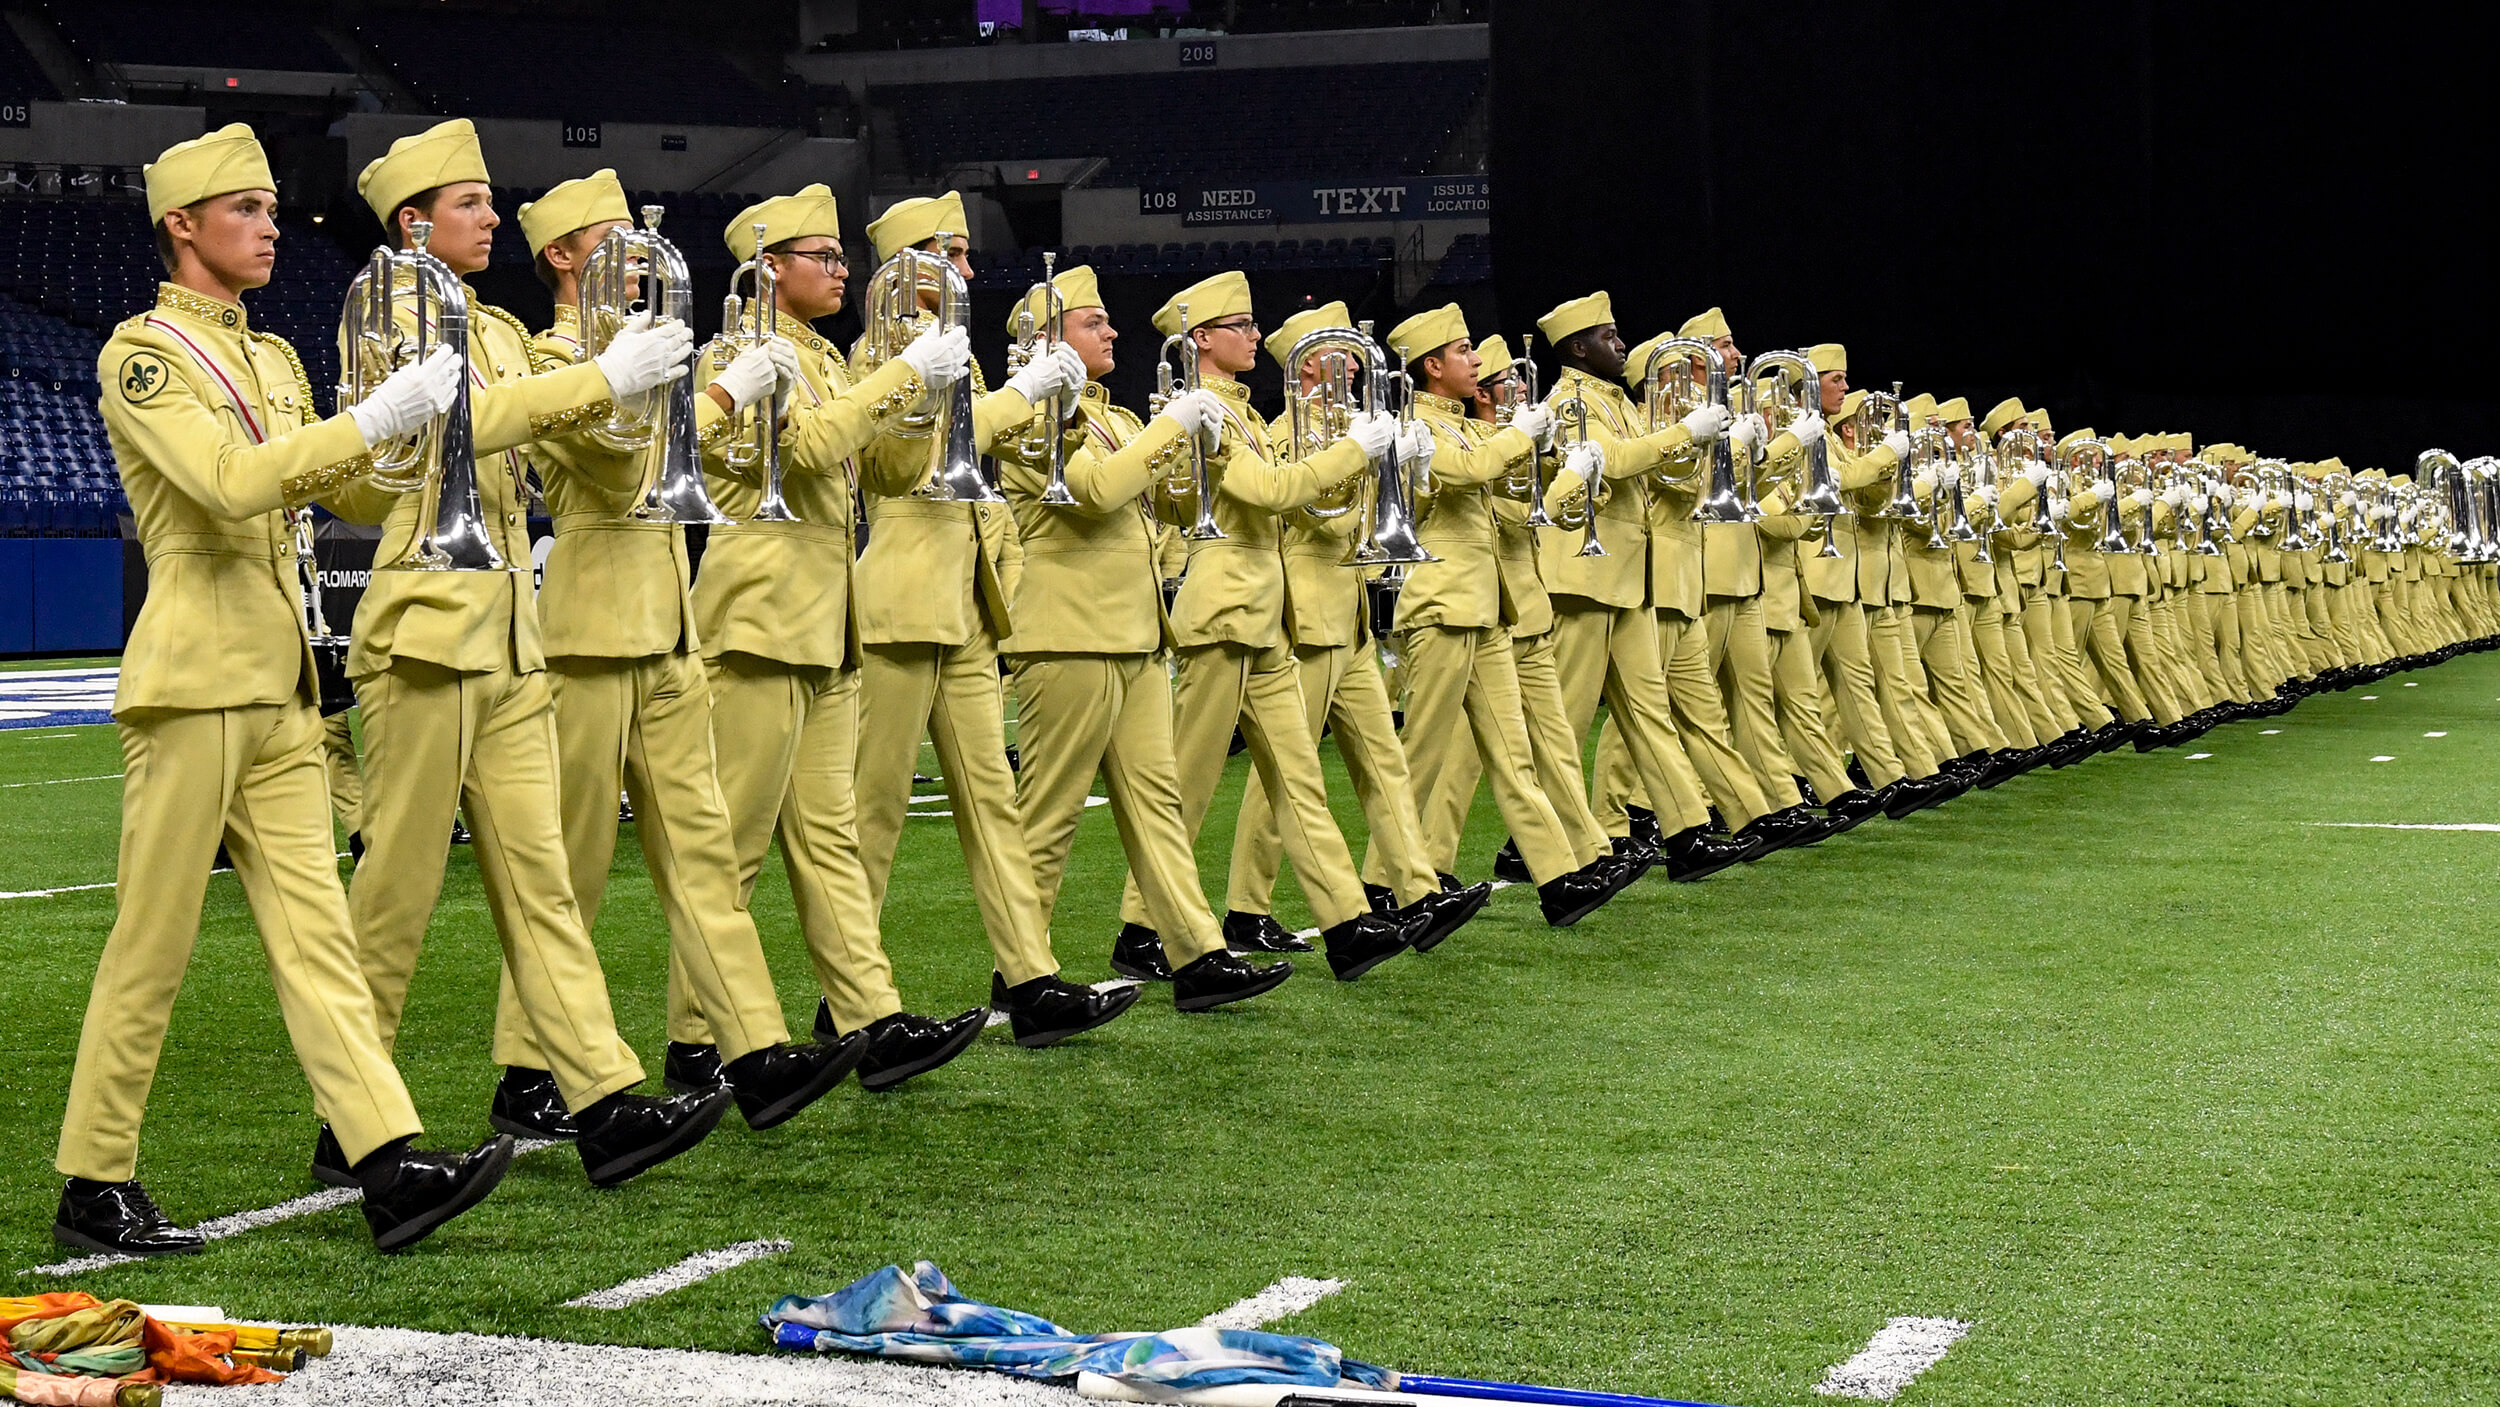 Marching Music Day, March 4th, marks fifth anniversary in 2021